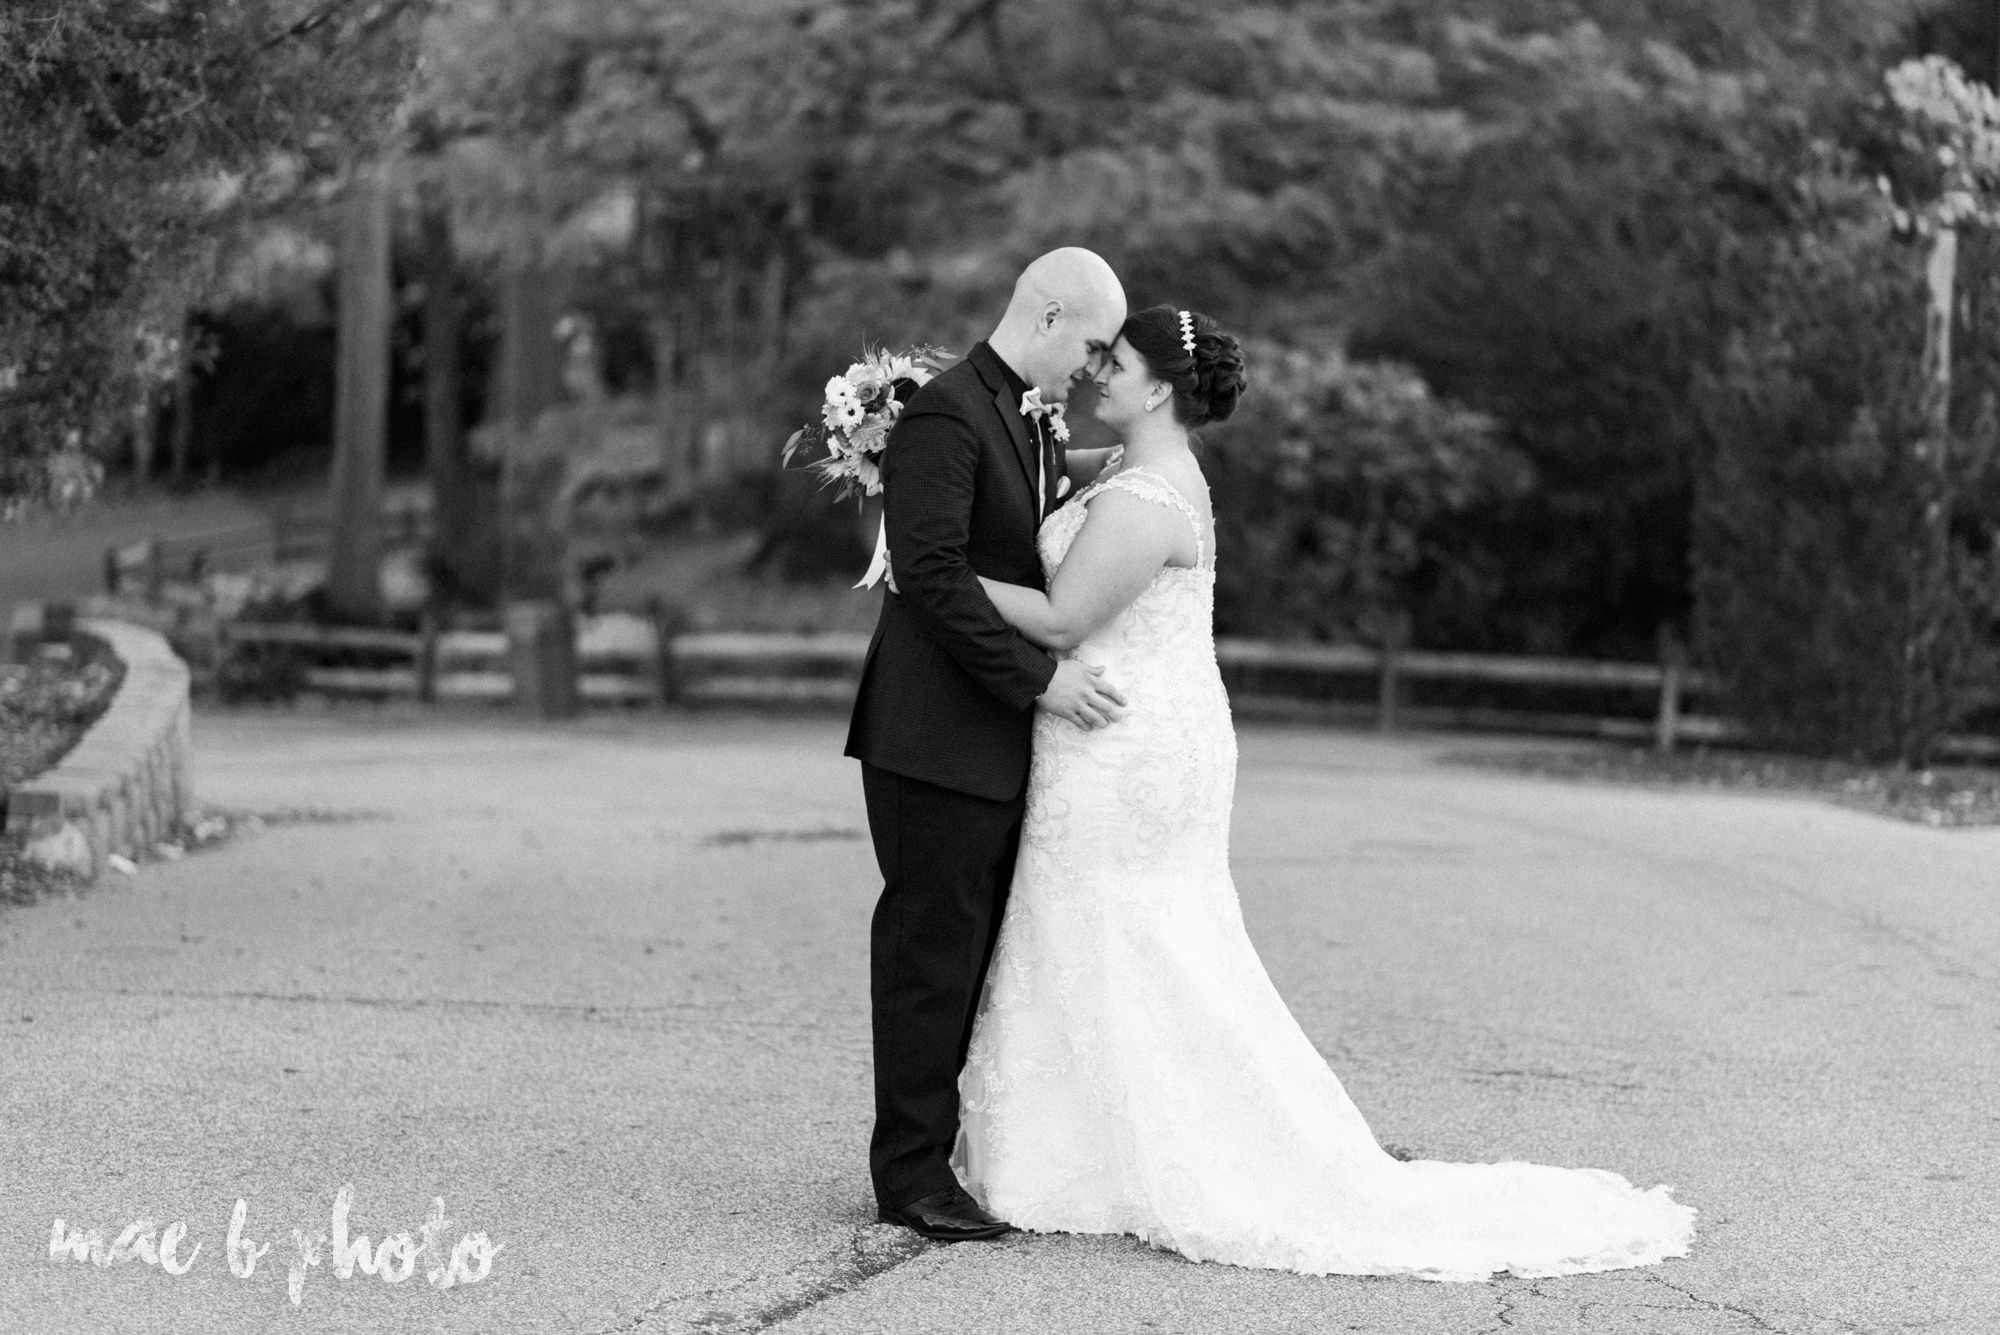 kaylynn & matt's fall zoo wedding at the cleveland metroparks zoo in cleveland ohio photographed by mae b photo-26.jpg